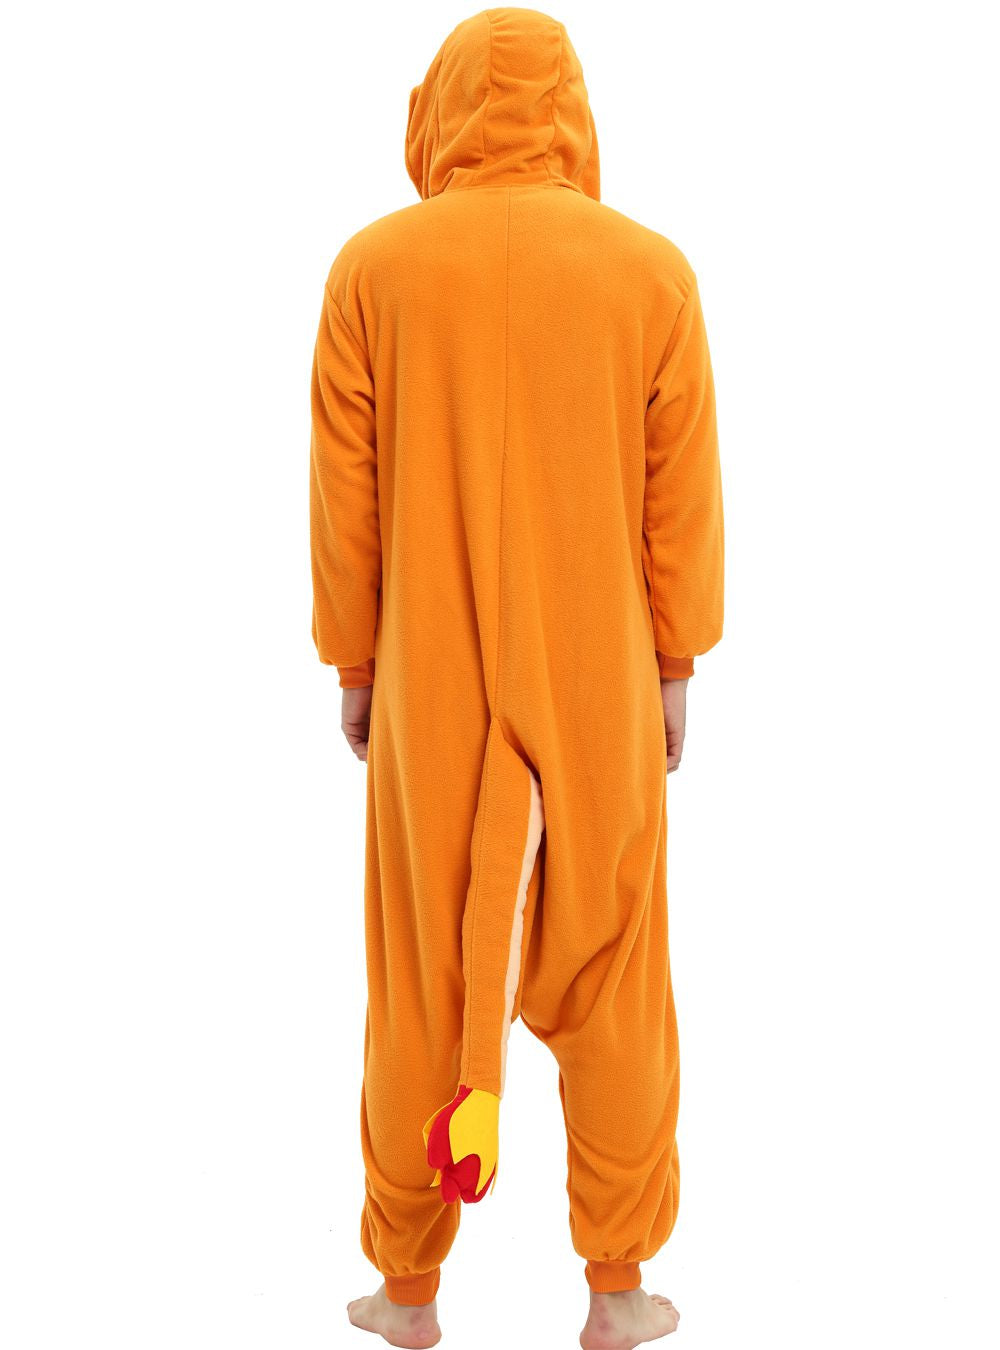 Pokemon Charmander Onesie For Adults and Teenagers